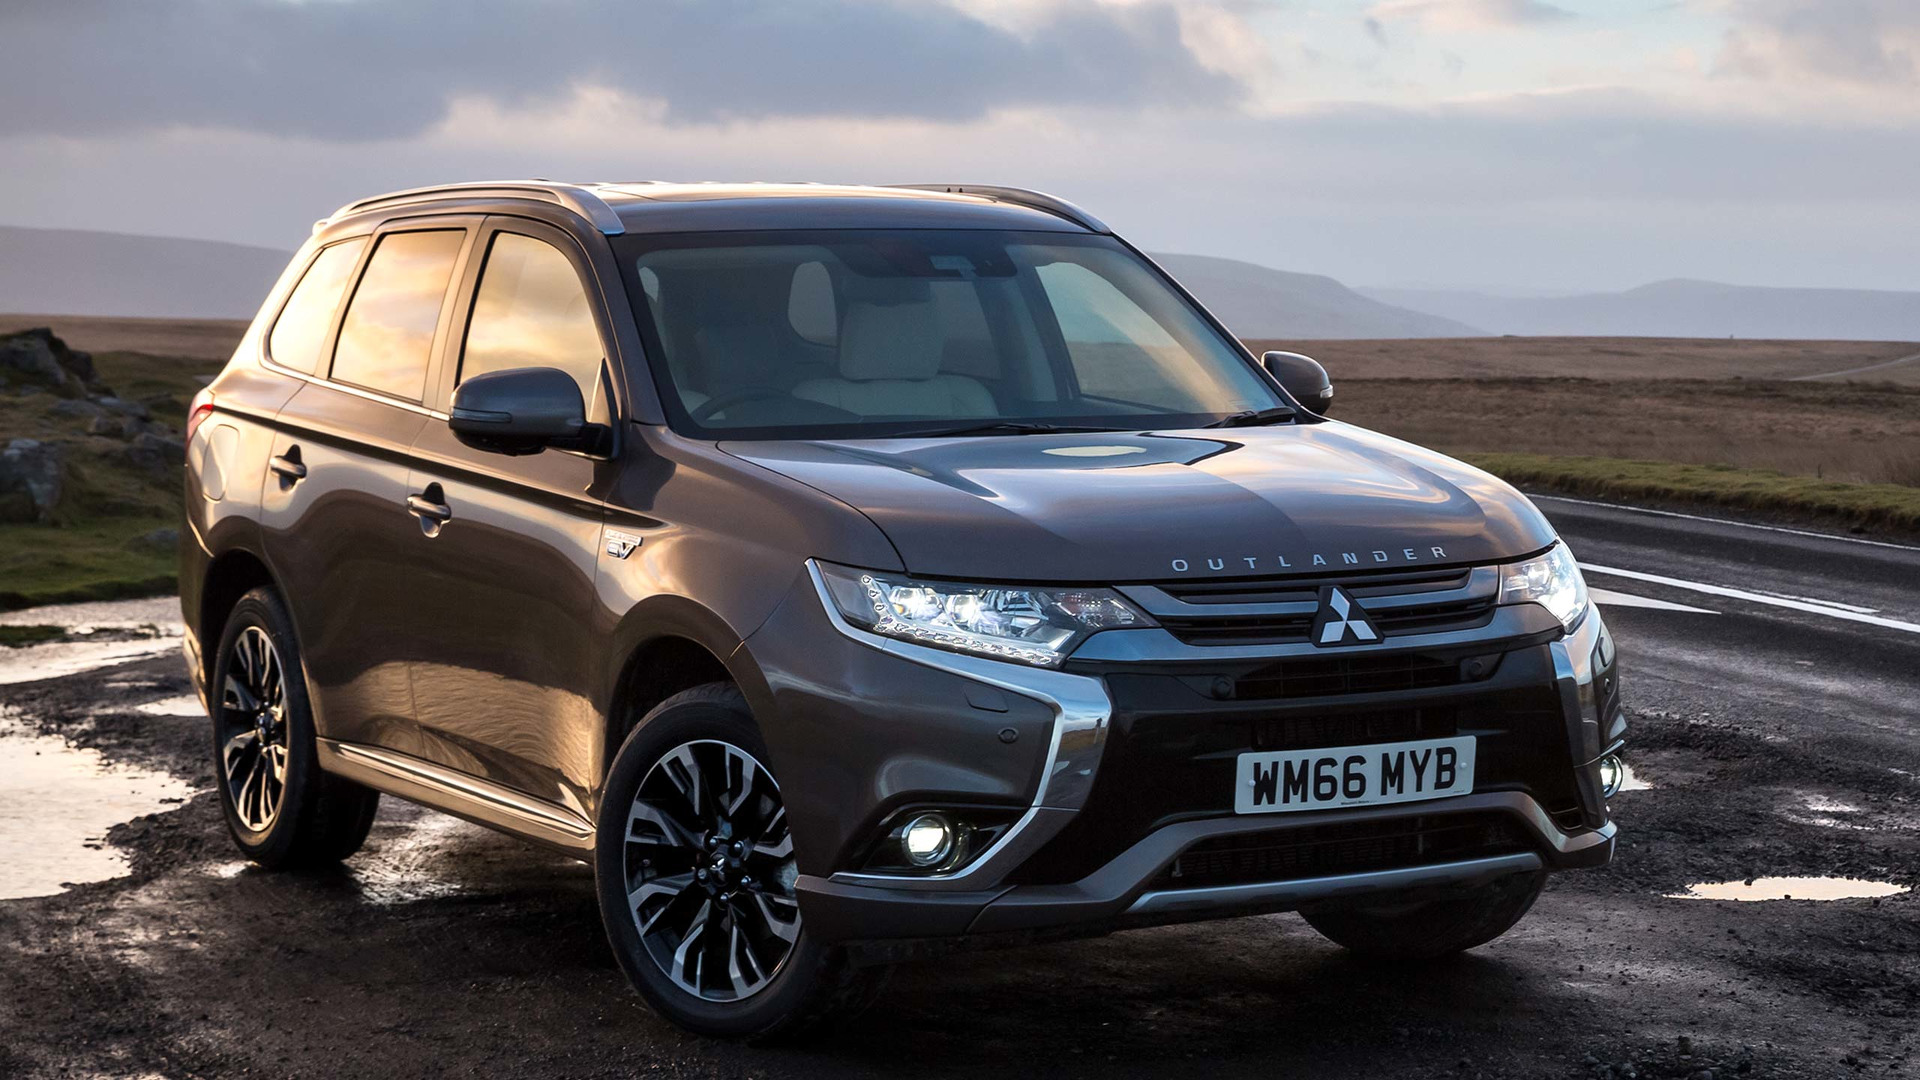 outlander test s original driver and road car mitsubishi photo reviews review concept gt prototype